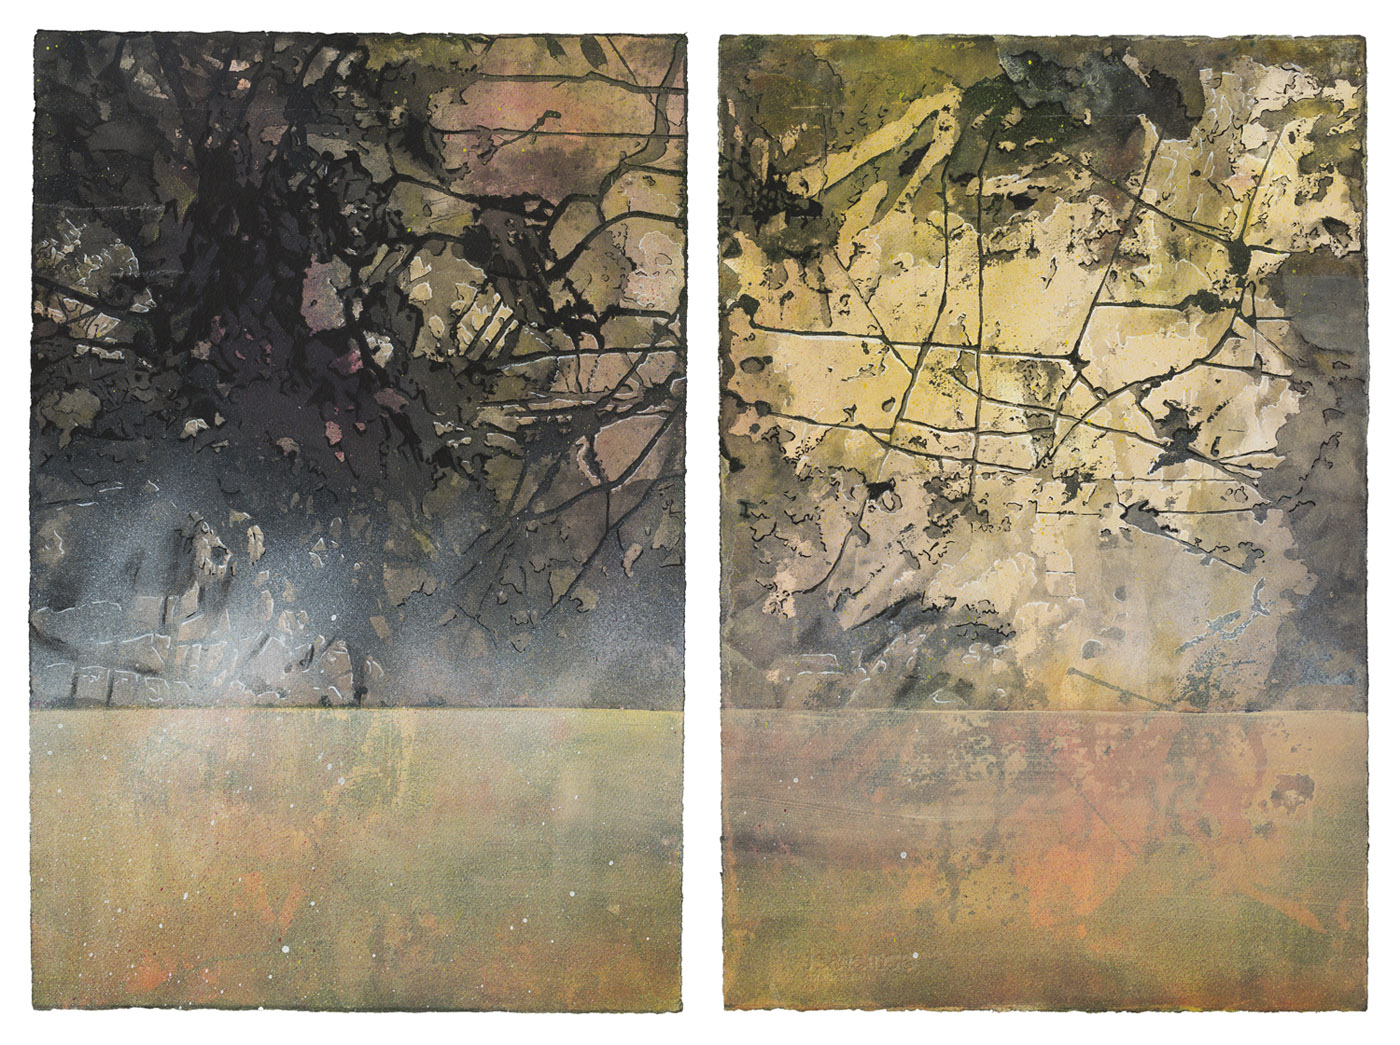 Waterline, acrylic, ink and shellac on paper, 56 x 77 cm, 2013 (photo by Dean Butters)